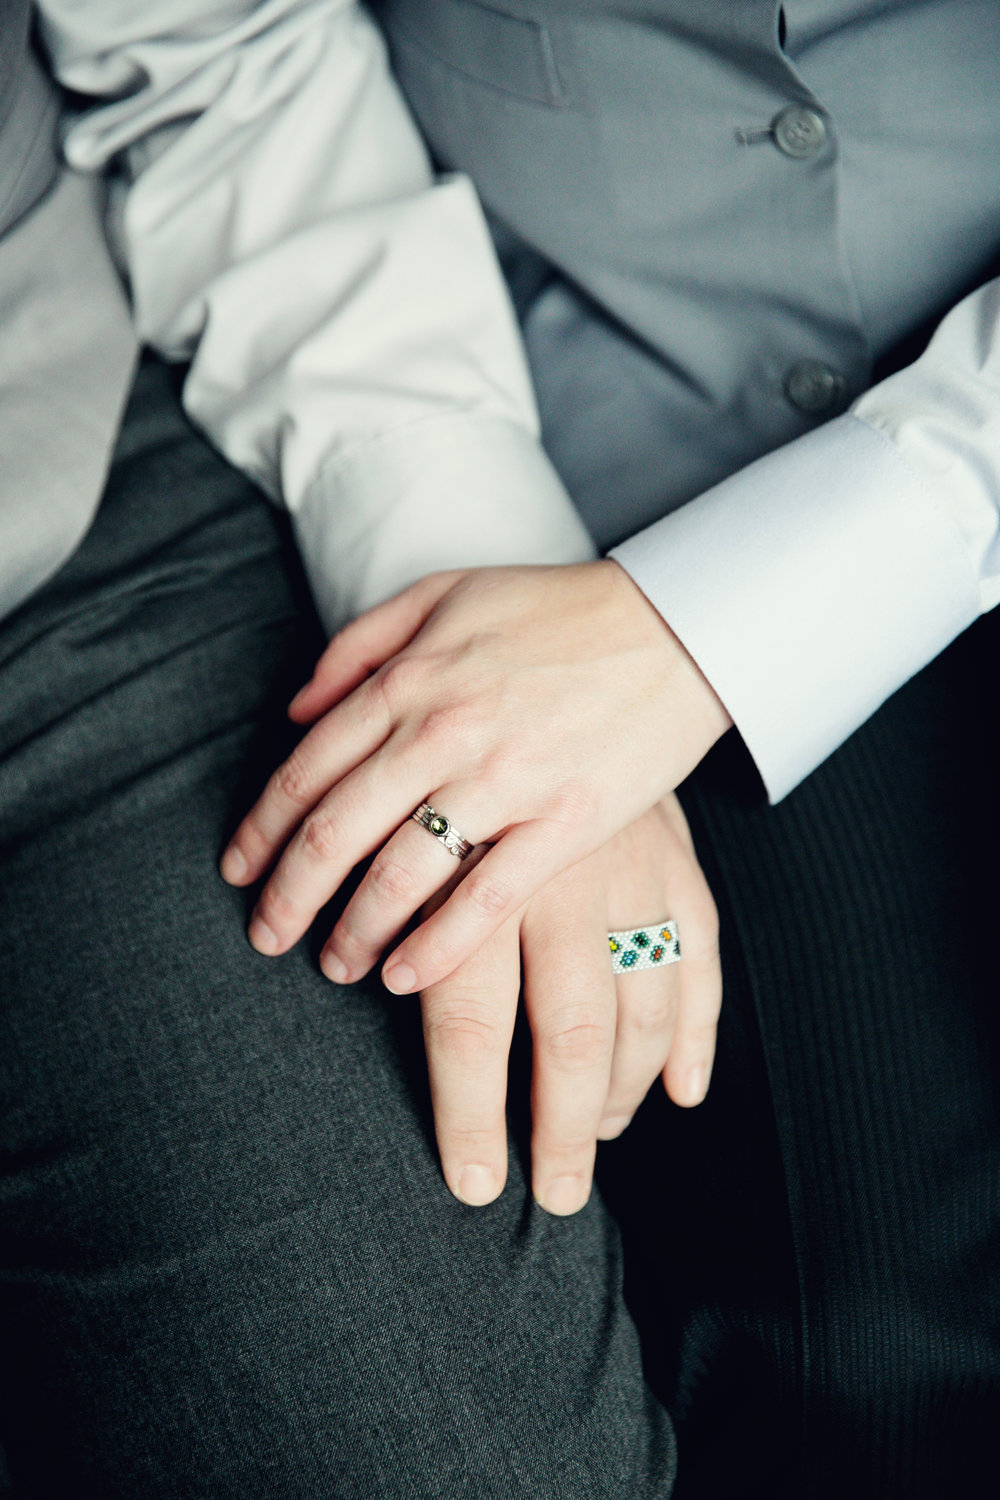 Overlapping hands with engagement rings